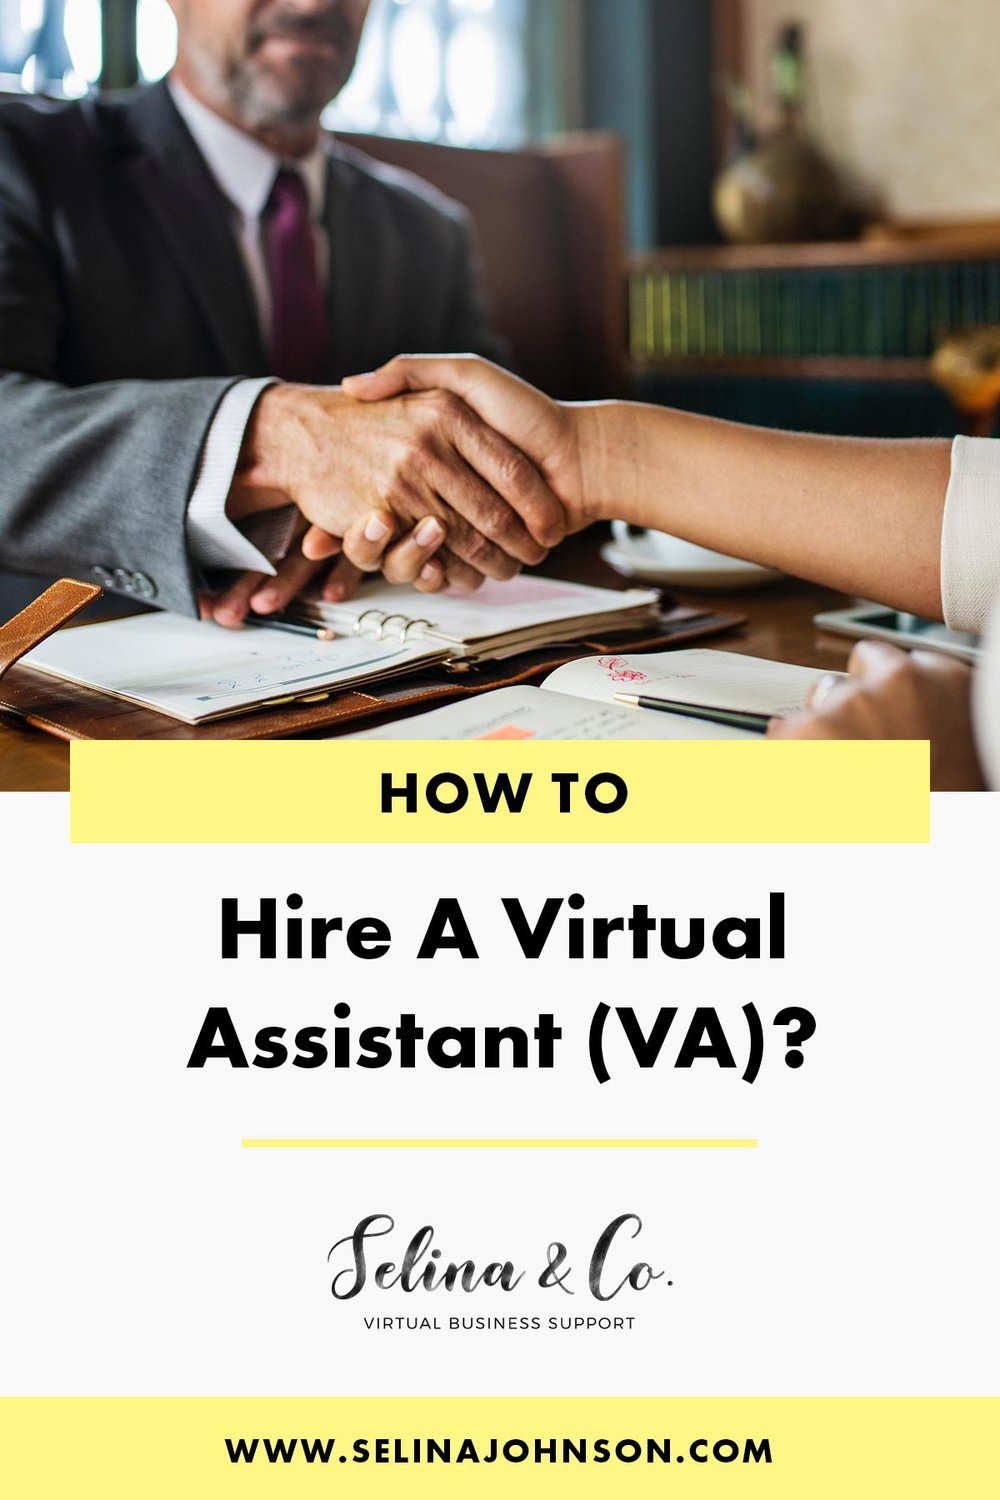 how-to-hire-virtual-assistant.jpg